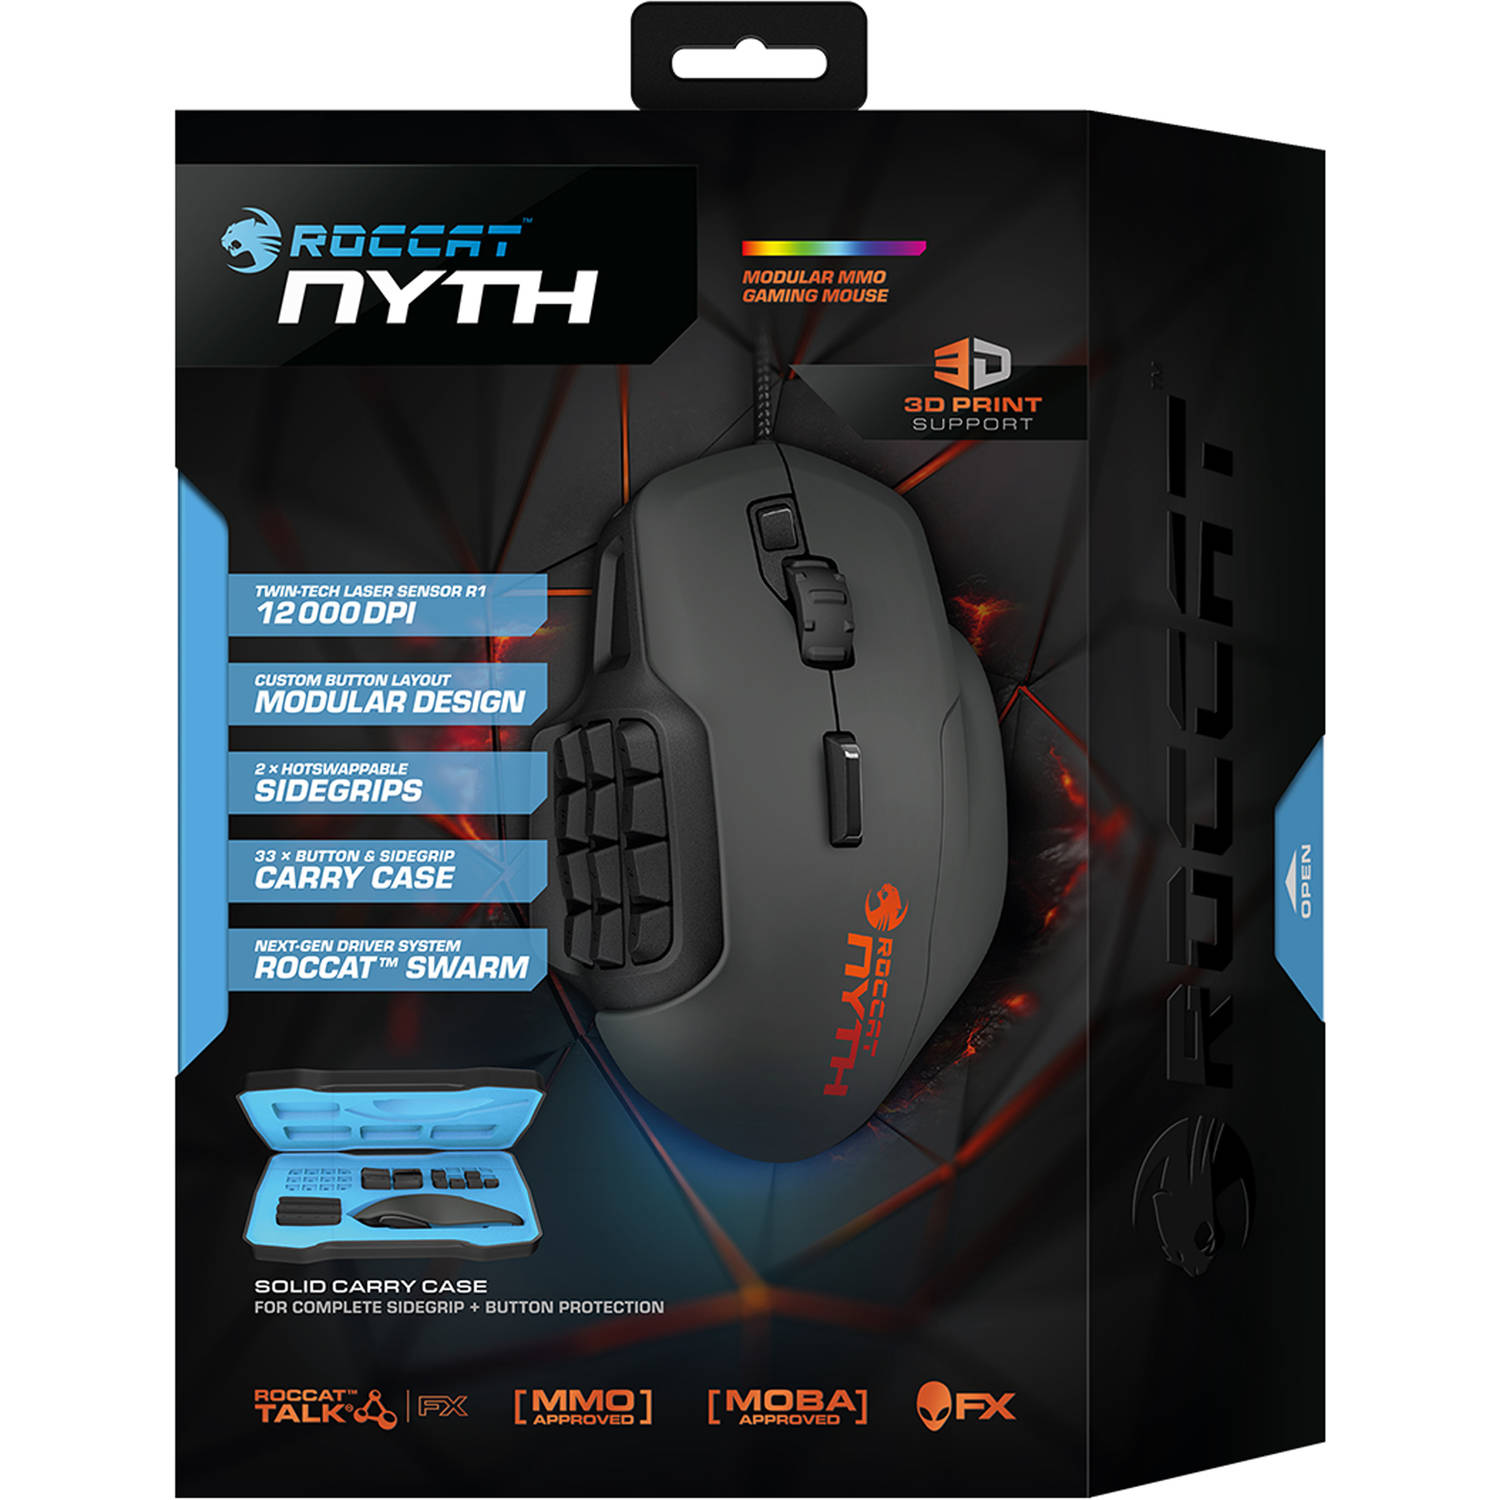 ROCCAT Nyth Custom Gaming Mouse with 12 Buttons, ROC-11-900-AM